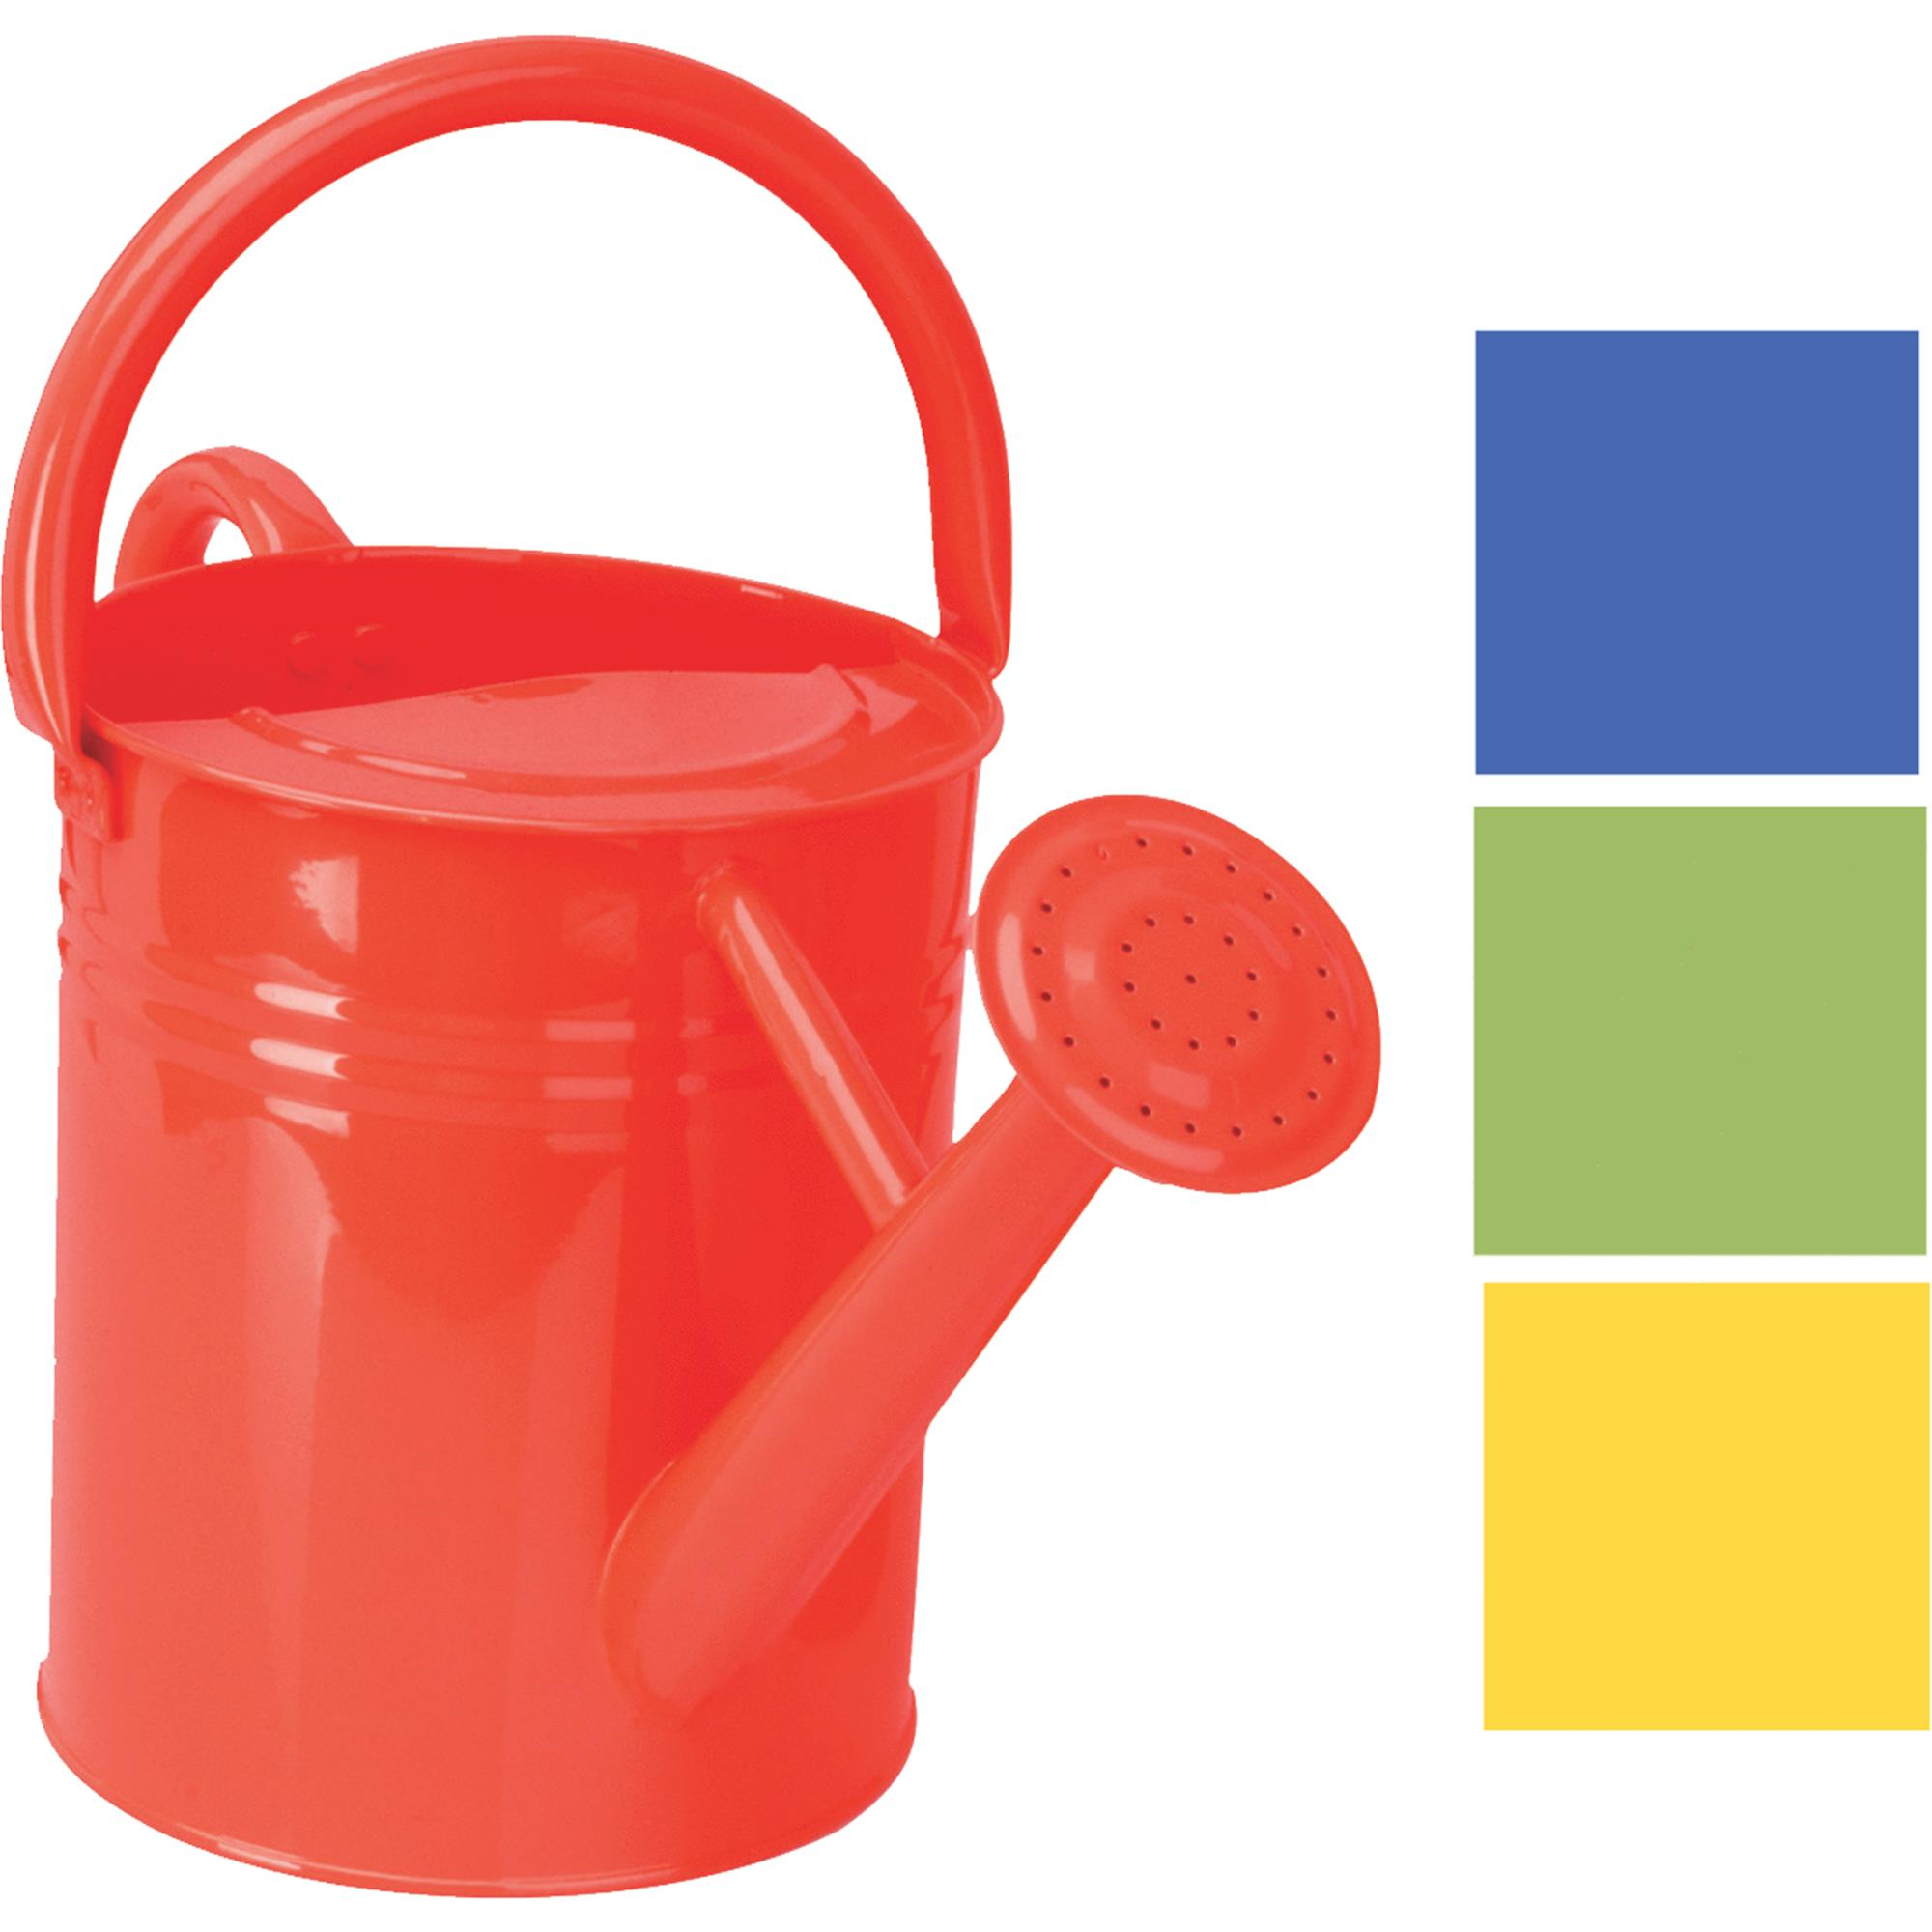 Panacea Watering Can by PANACEA PRODUCTS CORP